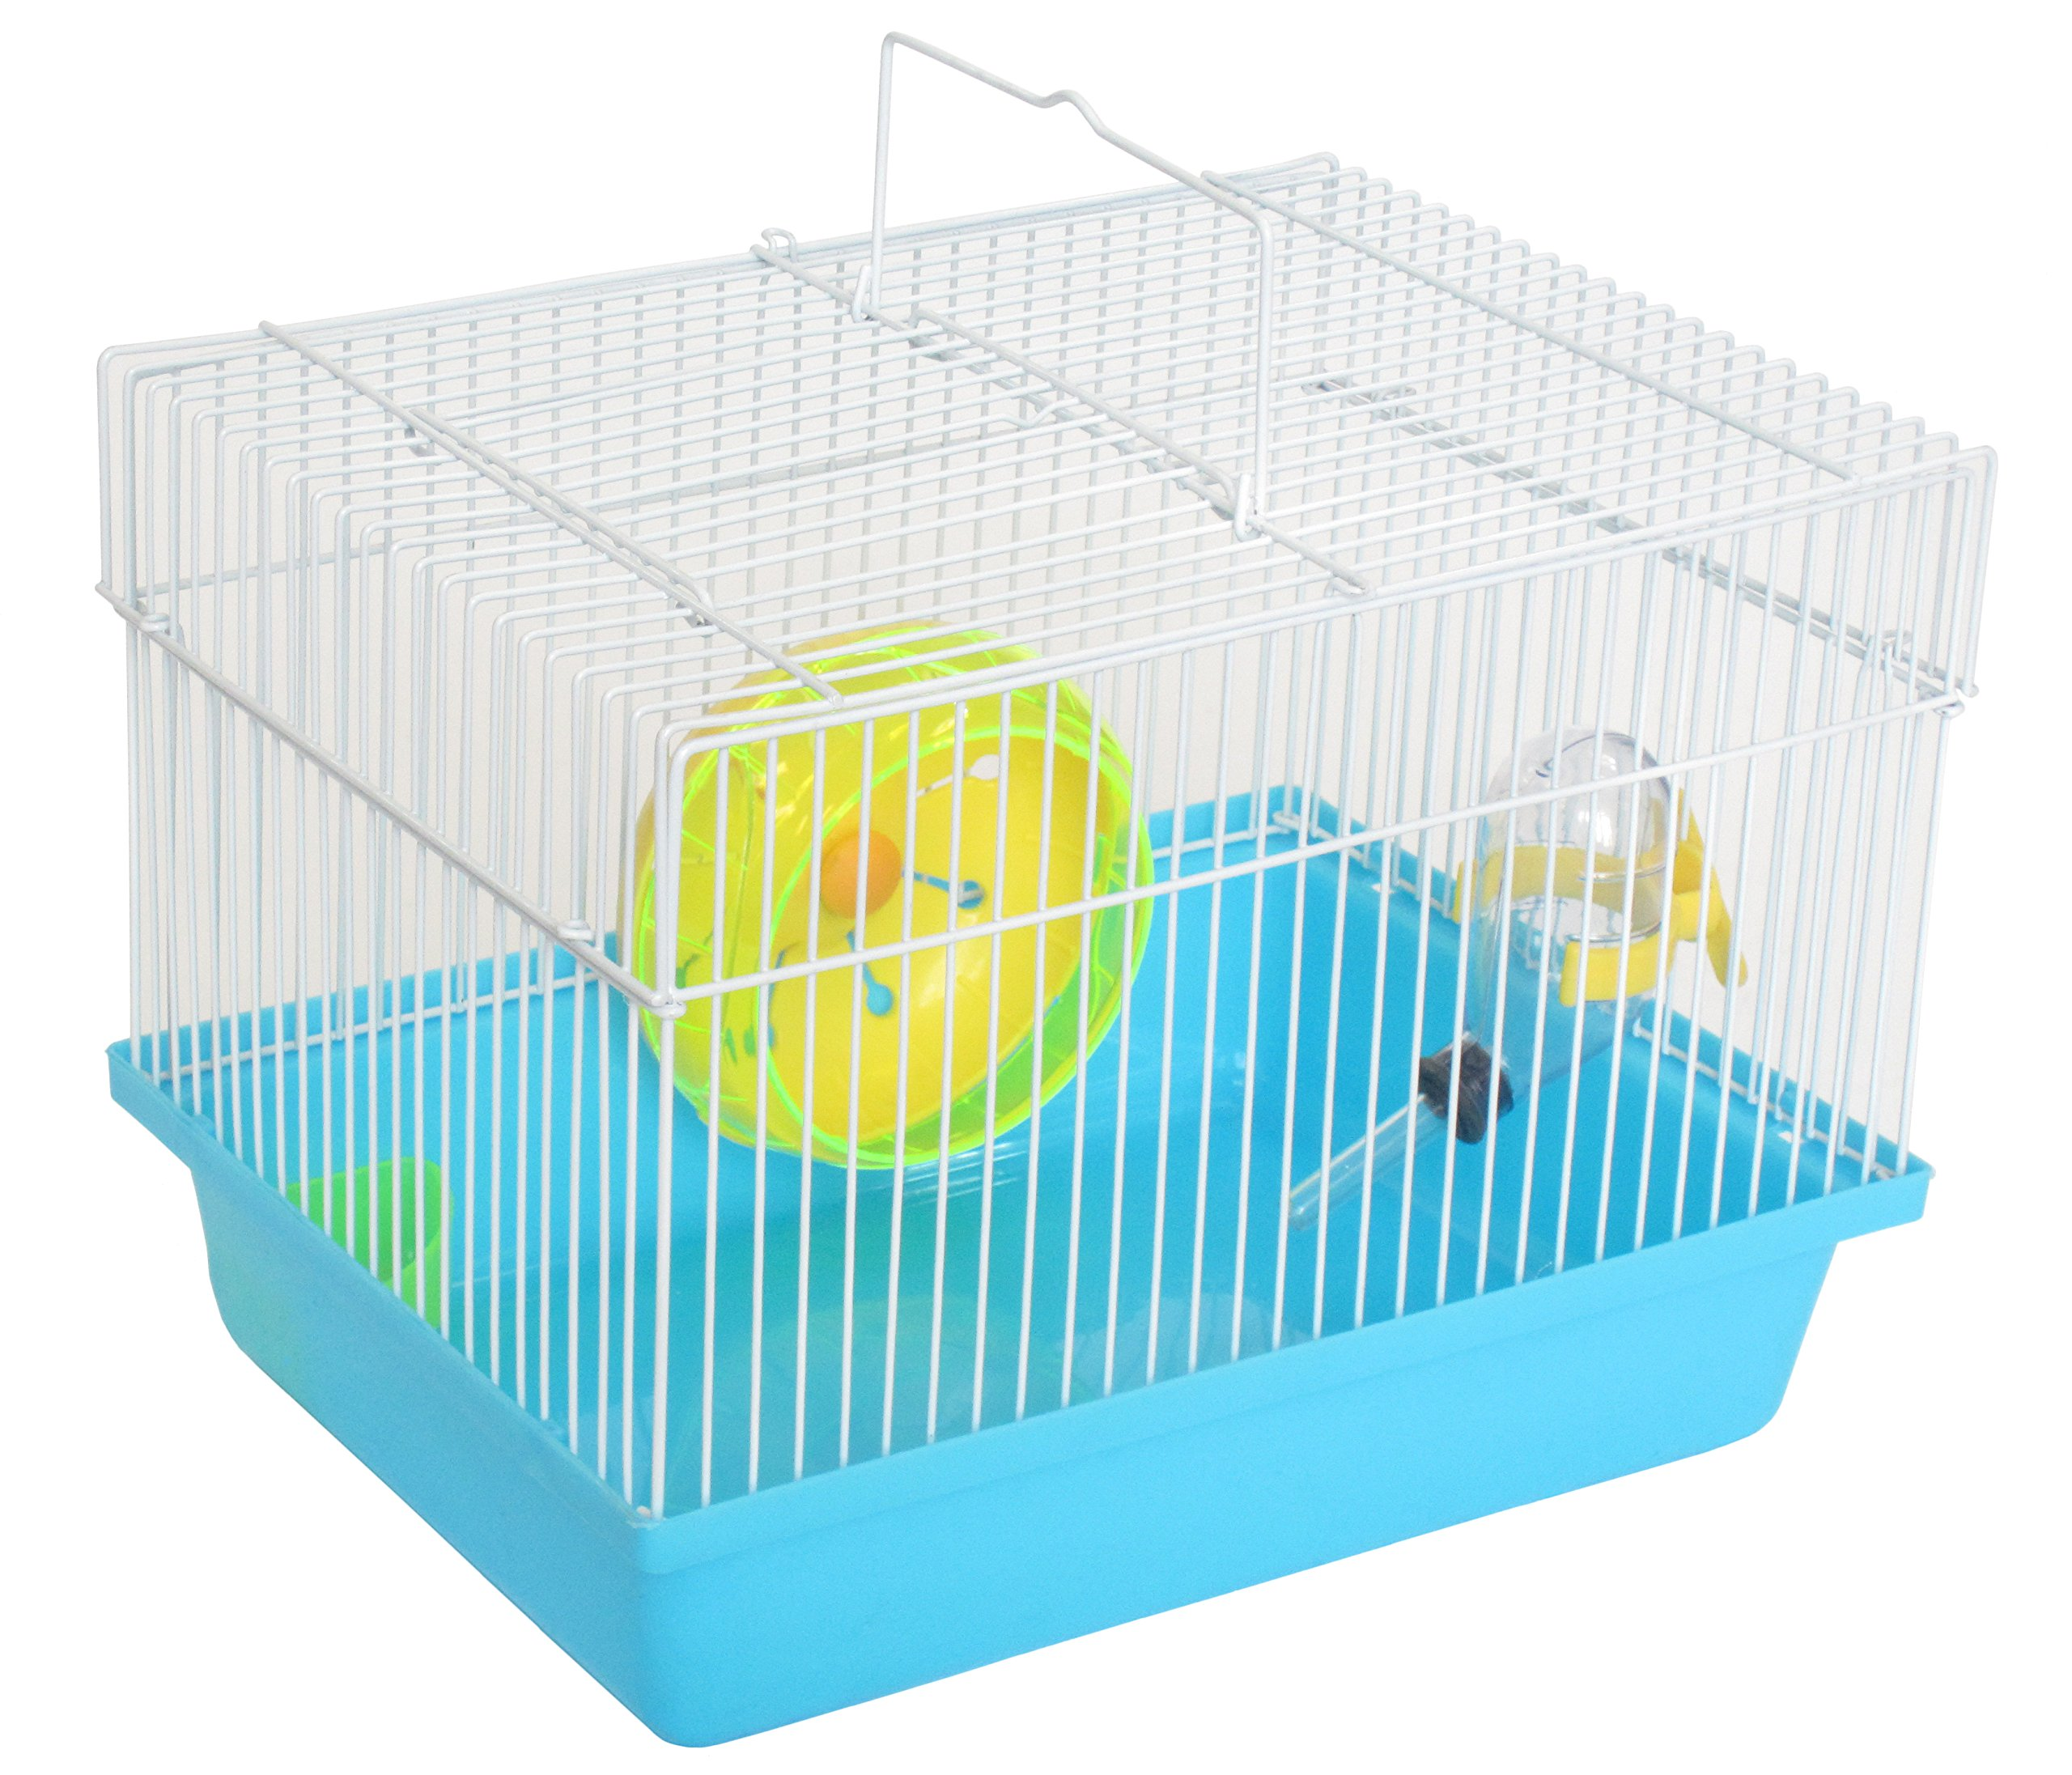 YML Single Story Dwarf Hamster Cage with Small Wheel/Dish and Water Bottle/Plastic Base, Blue, 10.5'' x 8'' x 7.75''